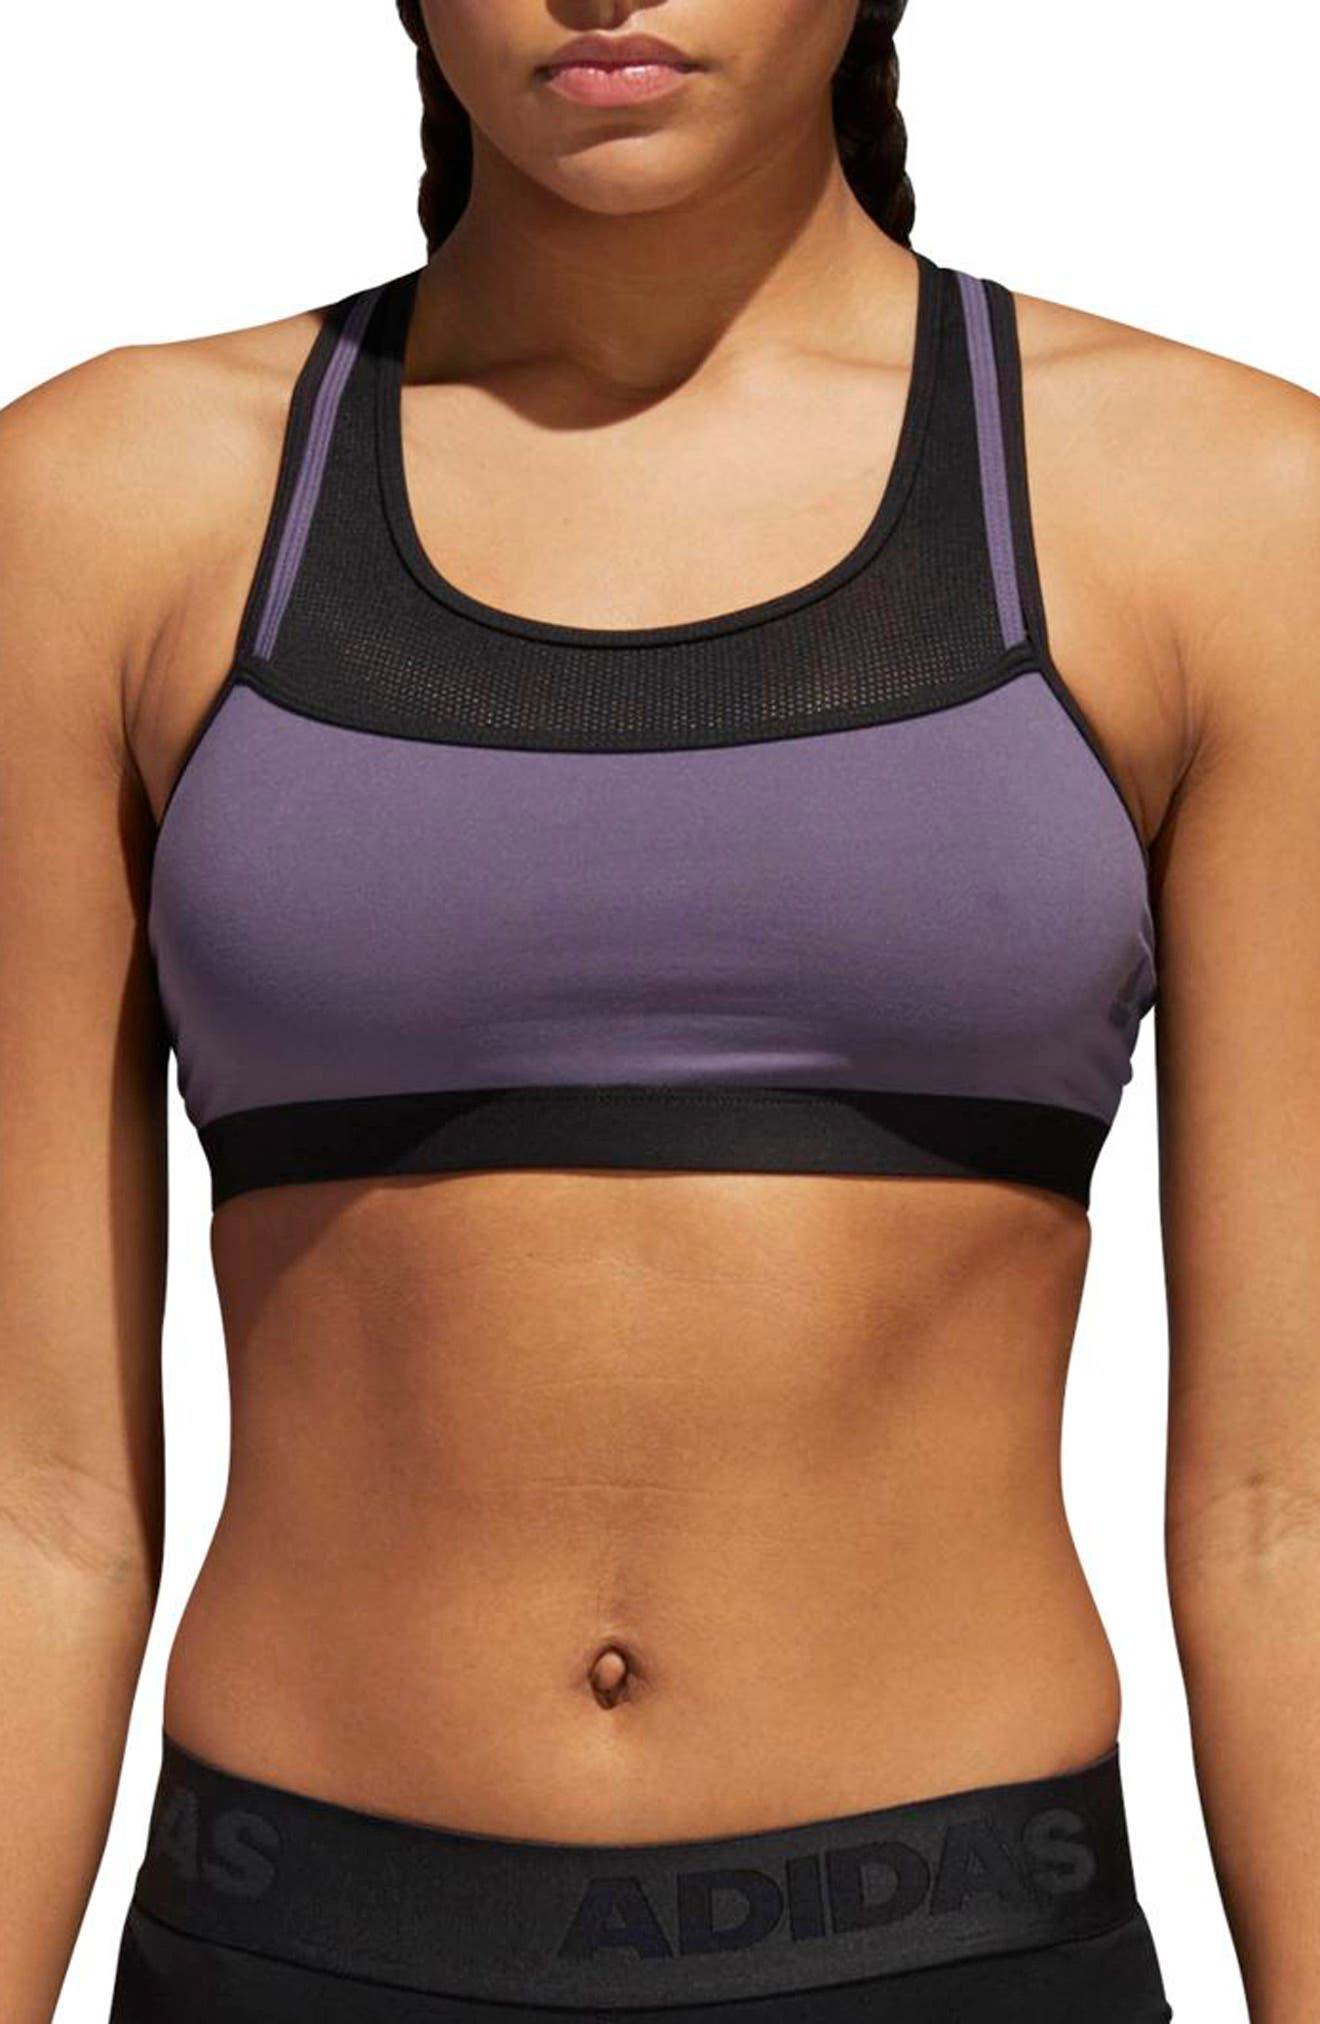 2-in-1 Impact Sports Bra,                             Main thumbnail 1, color,                             Trace Purple/ Black